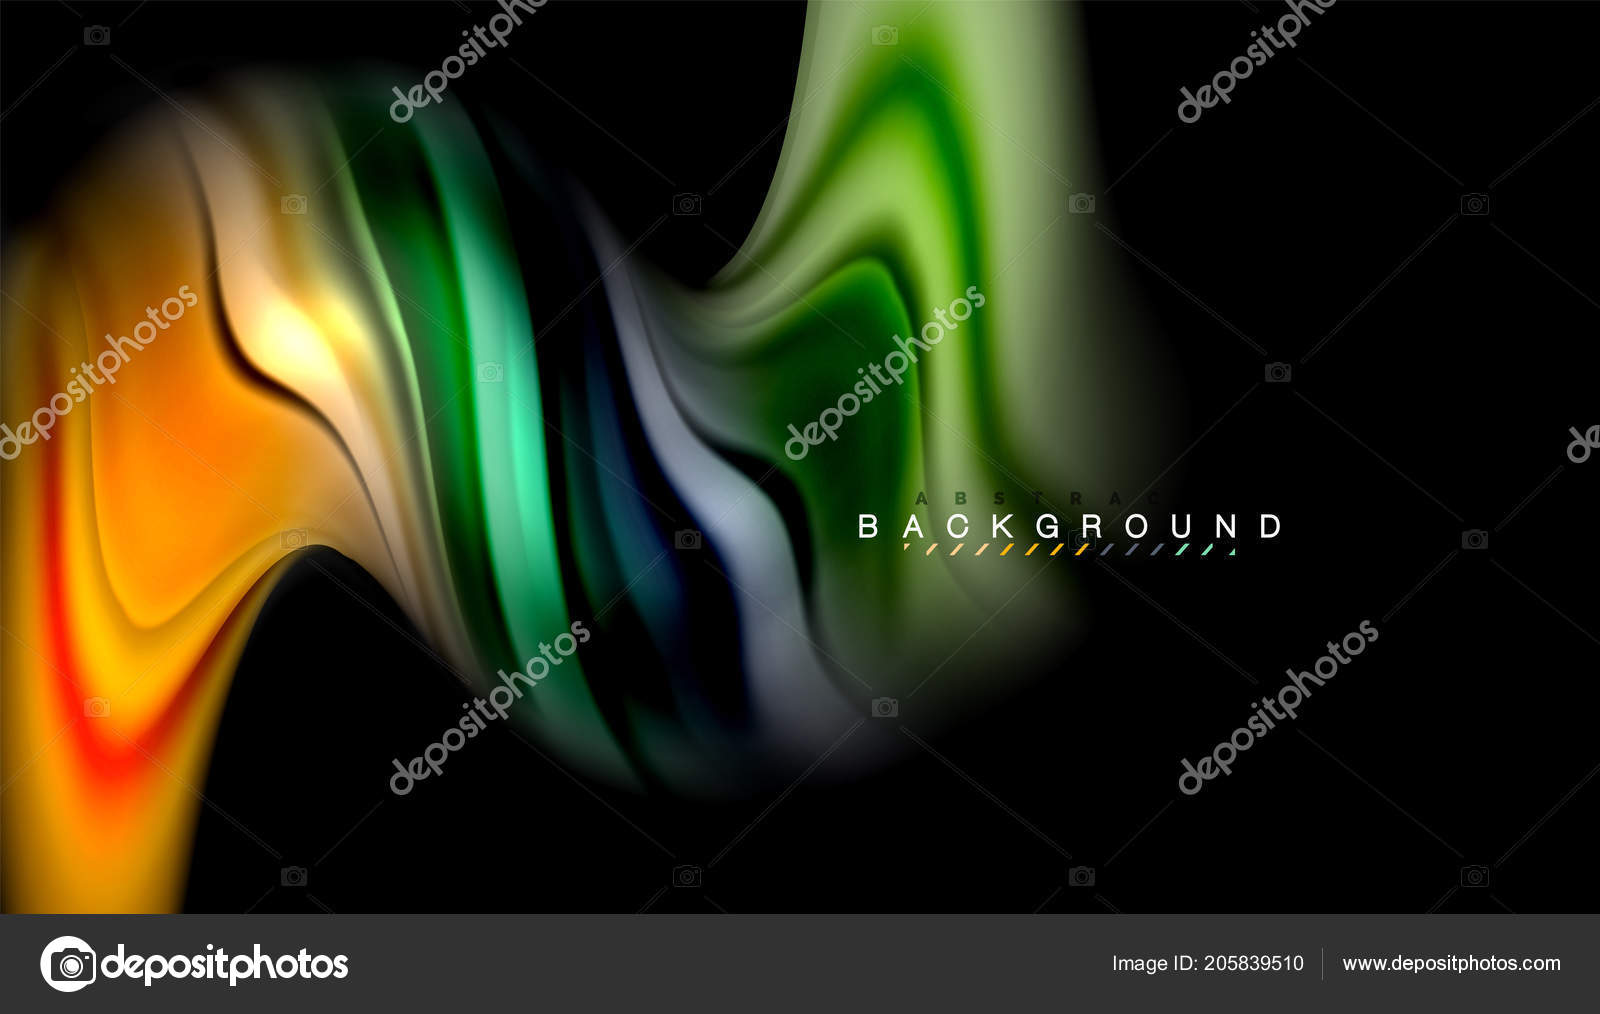 Fluid colors abstract background, twisted liquid design on